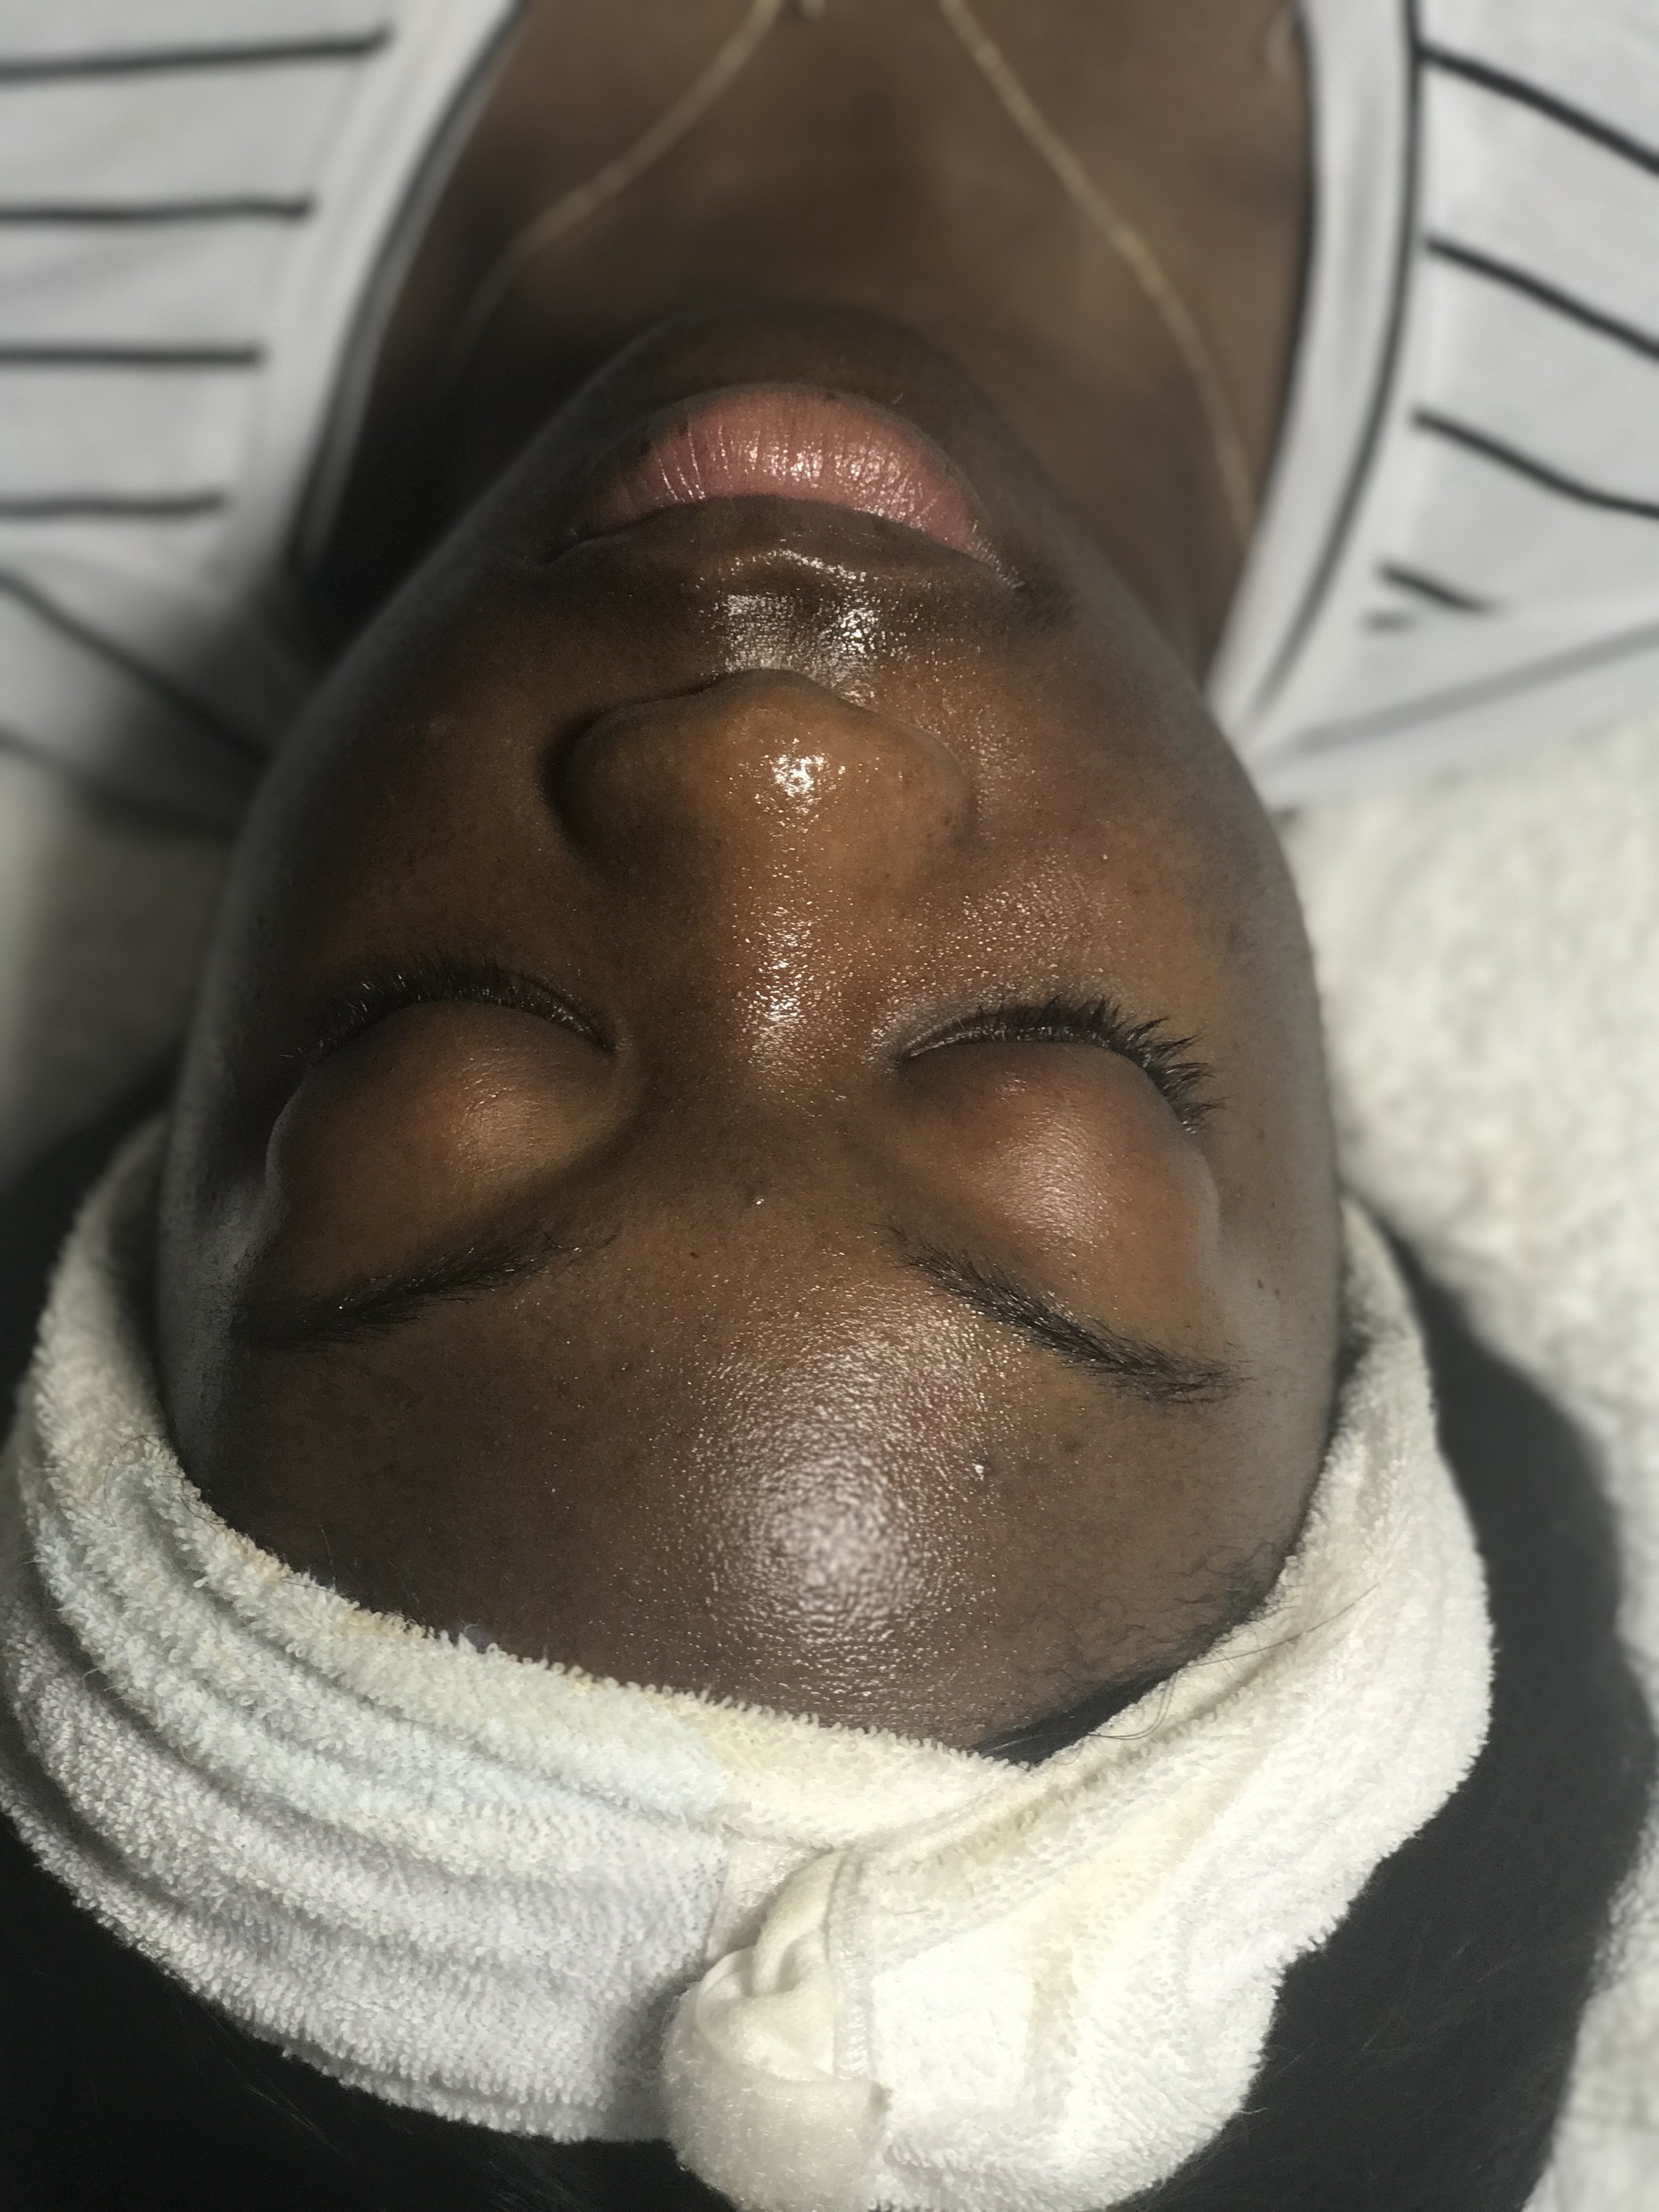 Skin Analysis - 2. A skin analysis was then performed to look for wrinkles, dehydration, sun damage, oils, and hyper-pigmentation. It was found that my skin was combination/dry with oils more so on the nose and chin.